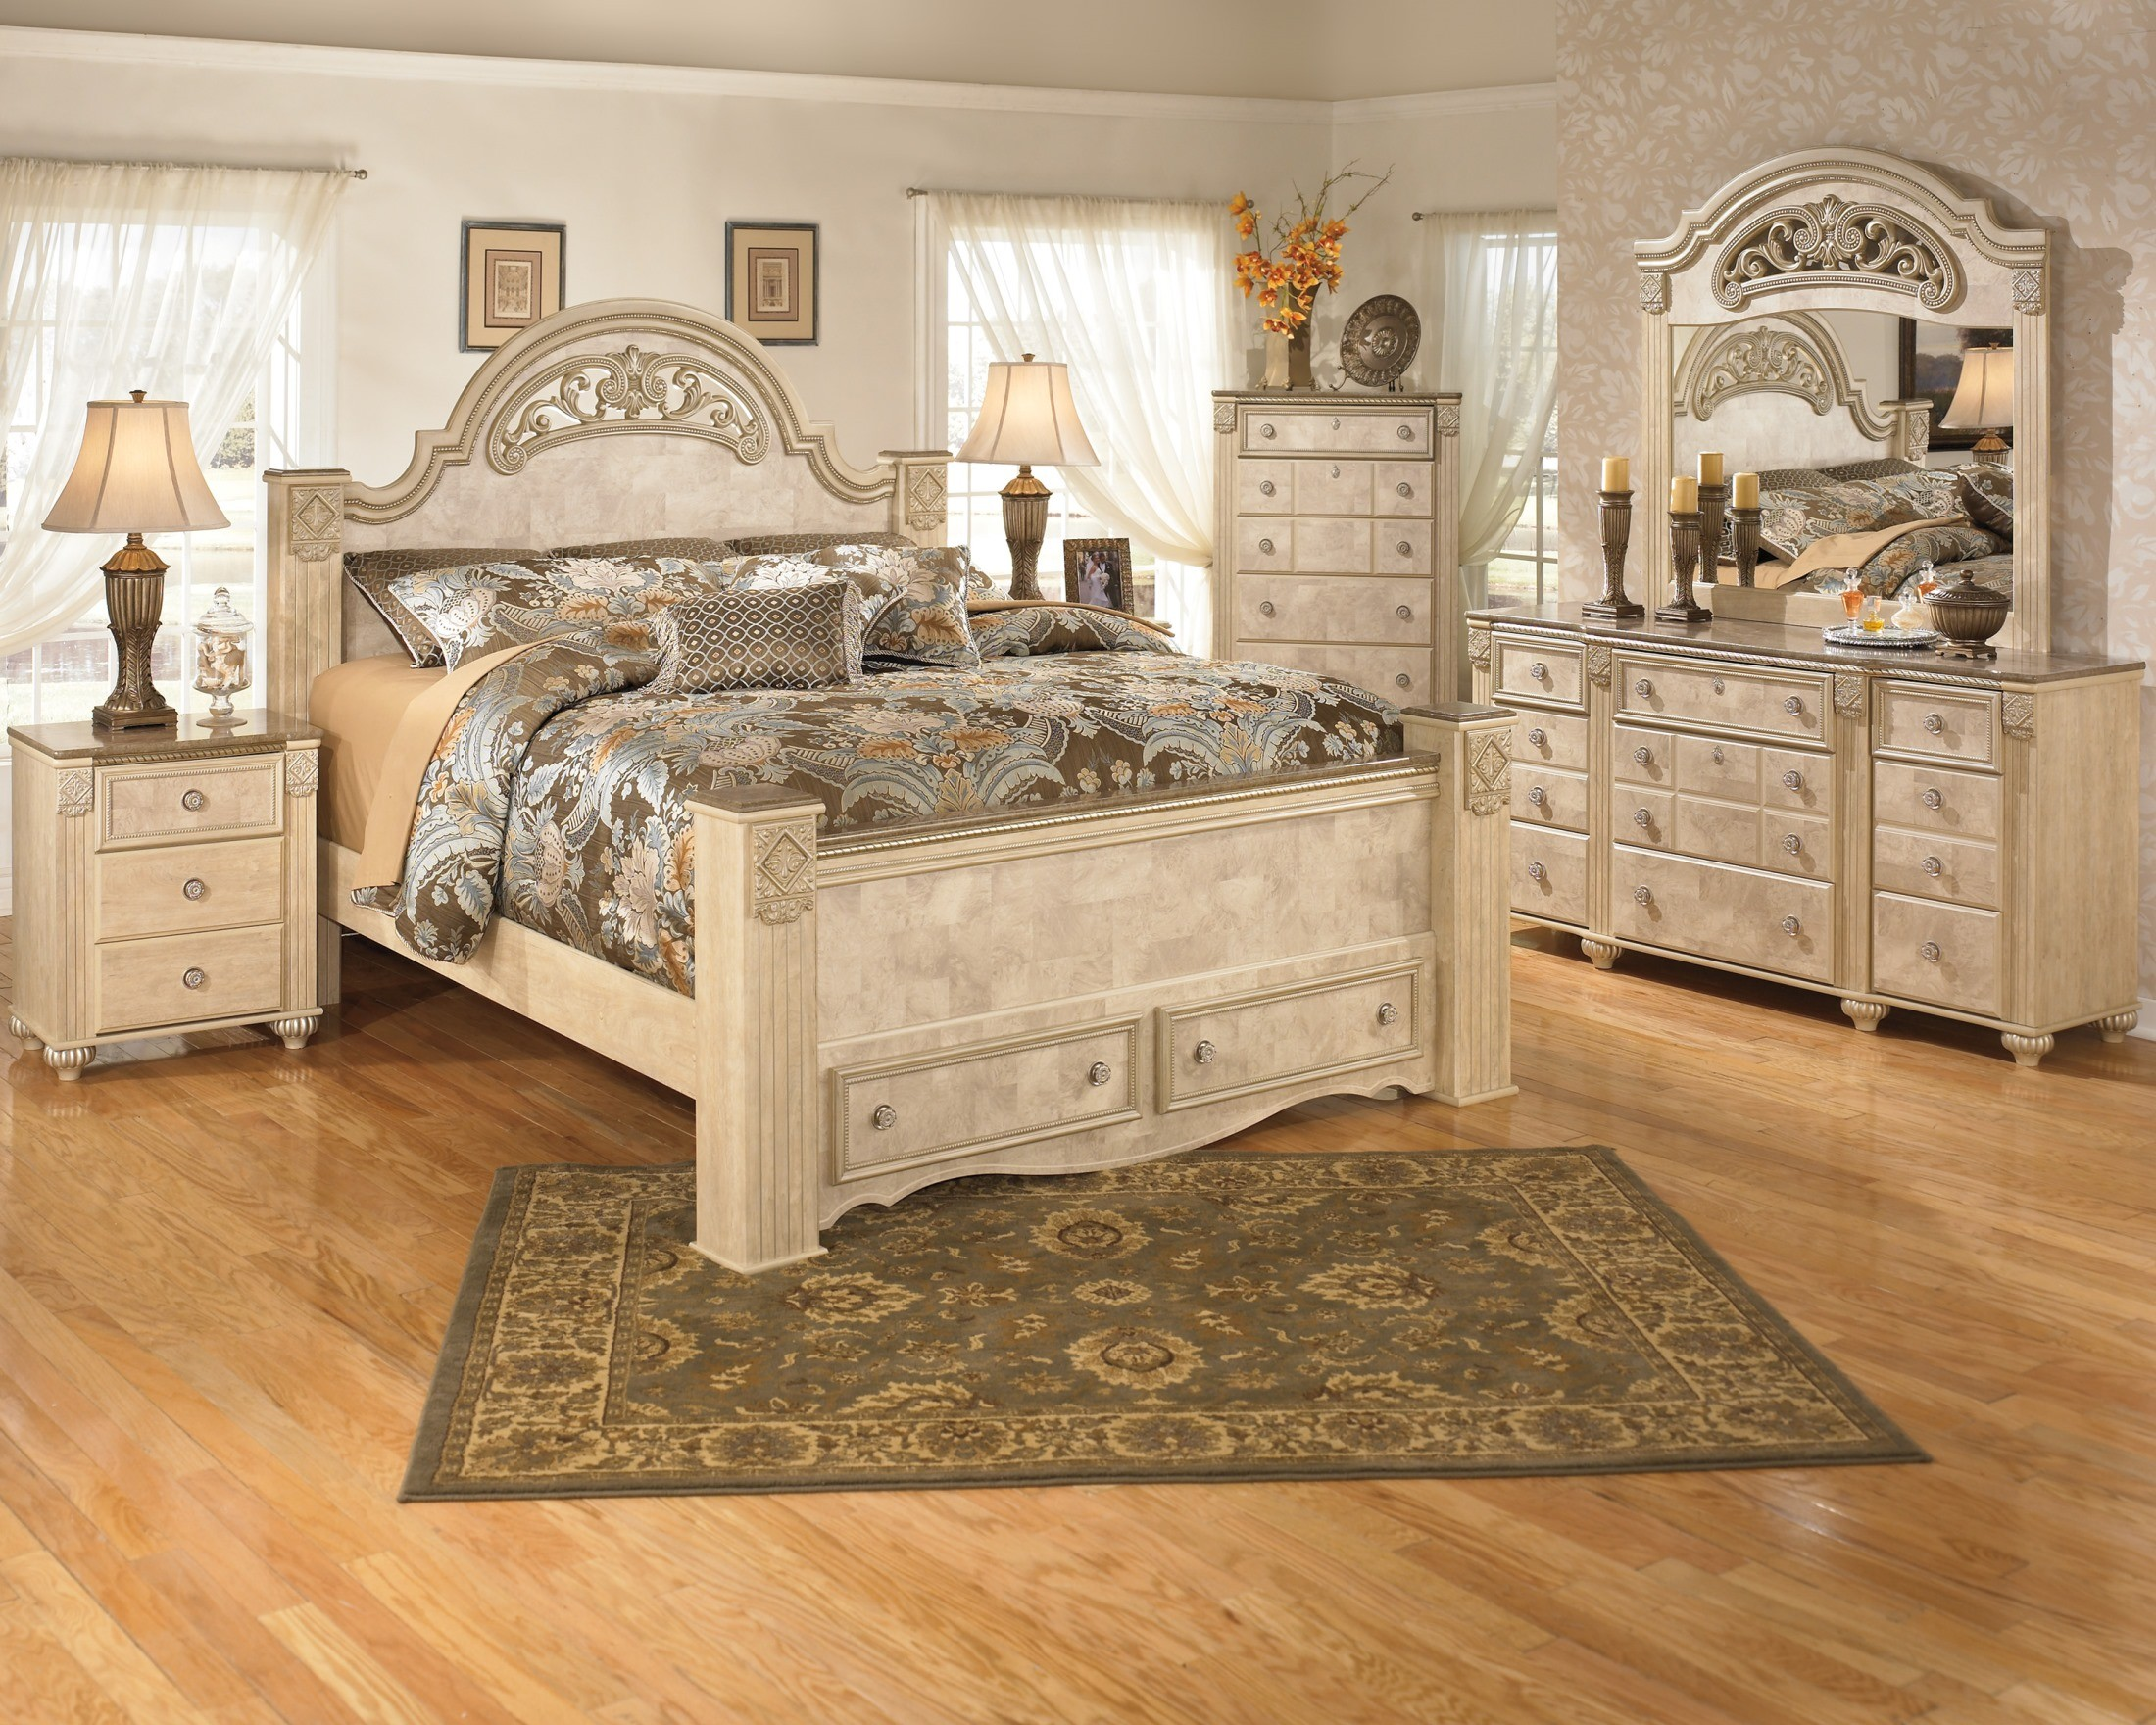 337279. Saveaha Poster Storage Bedroom Set from Ashley  B346 67 64S 50 98